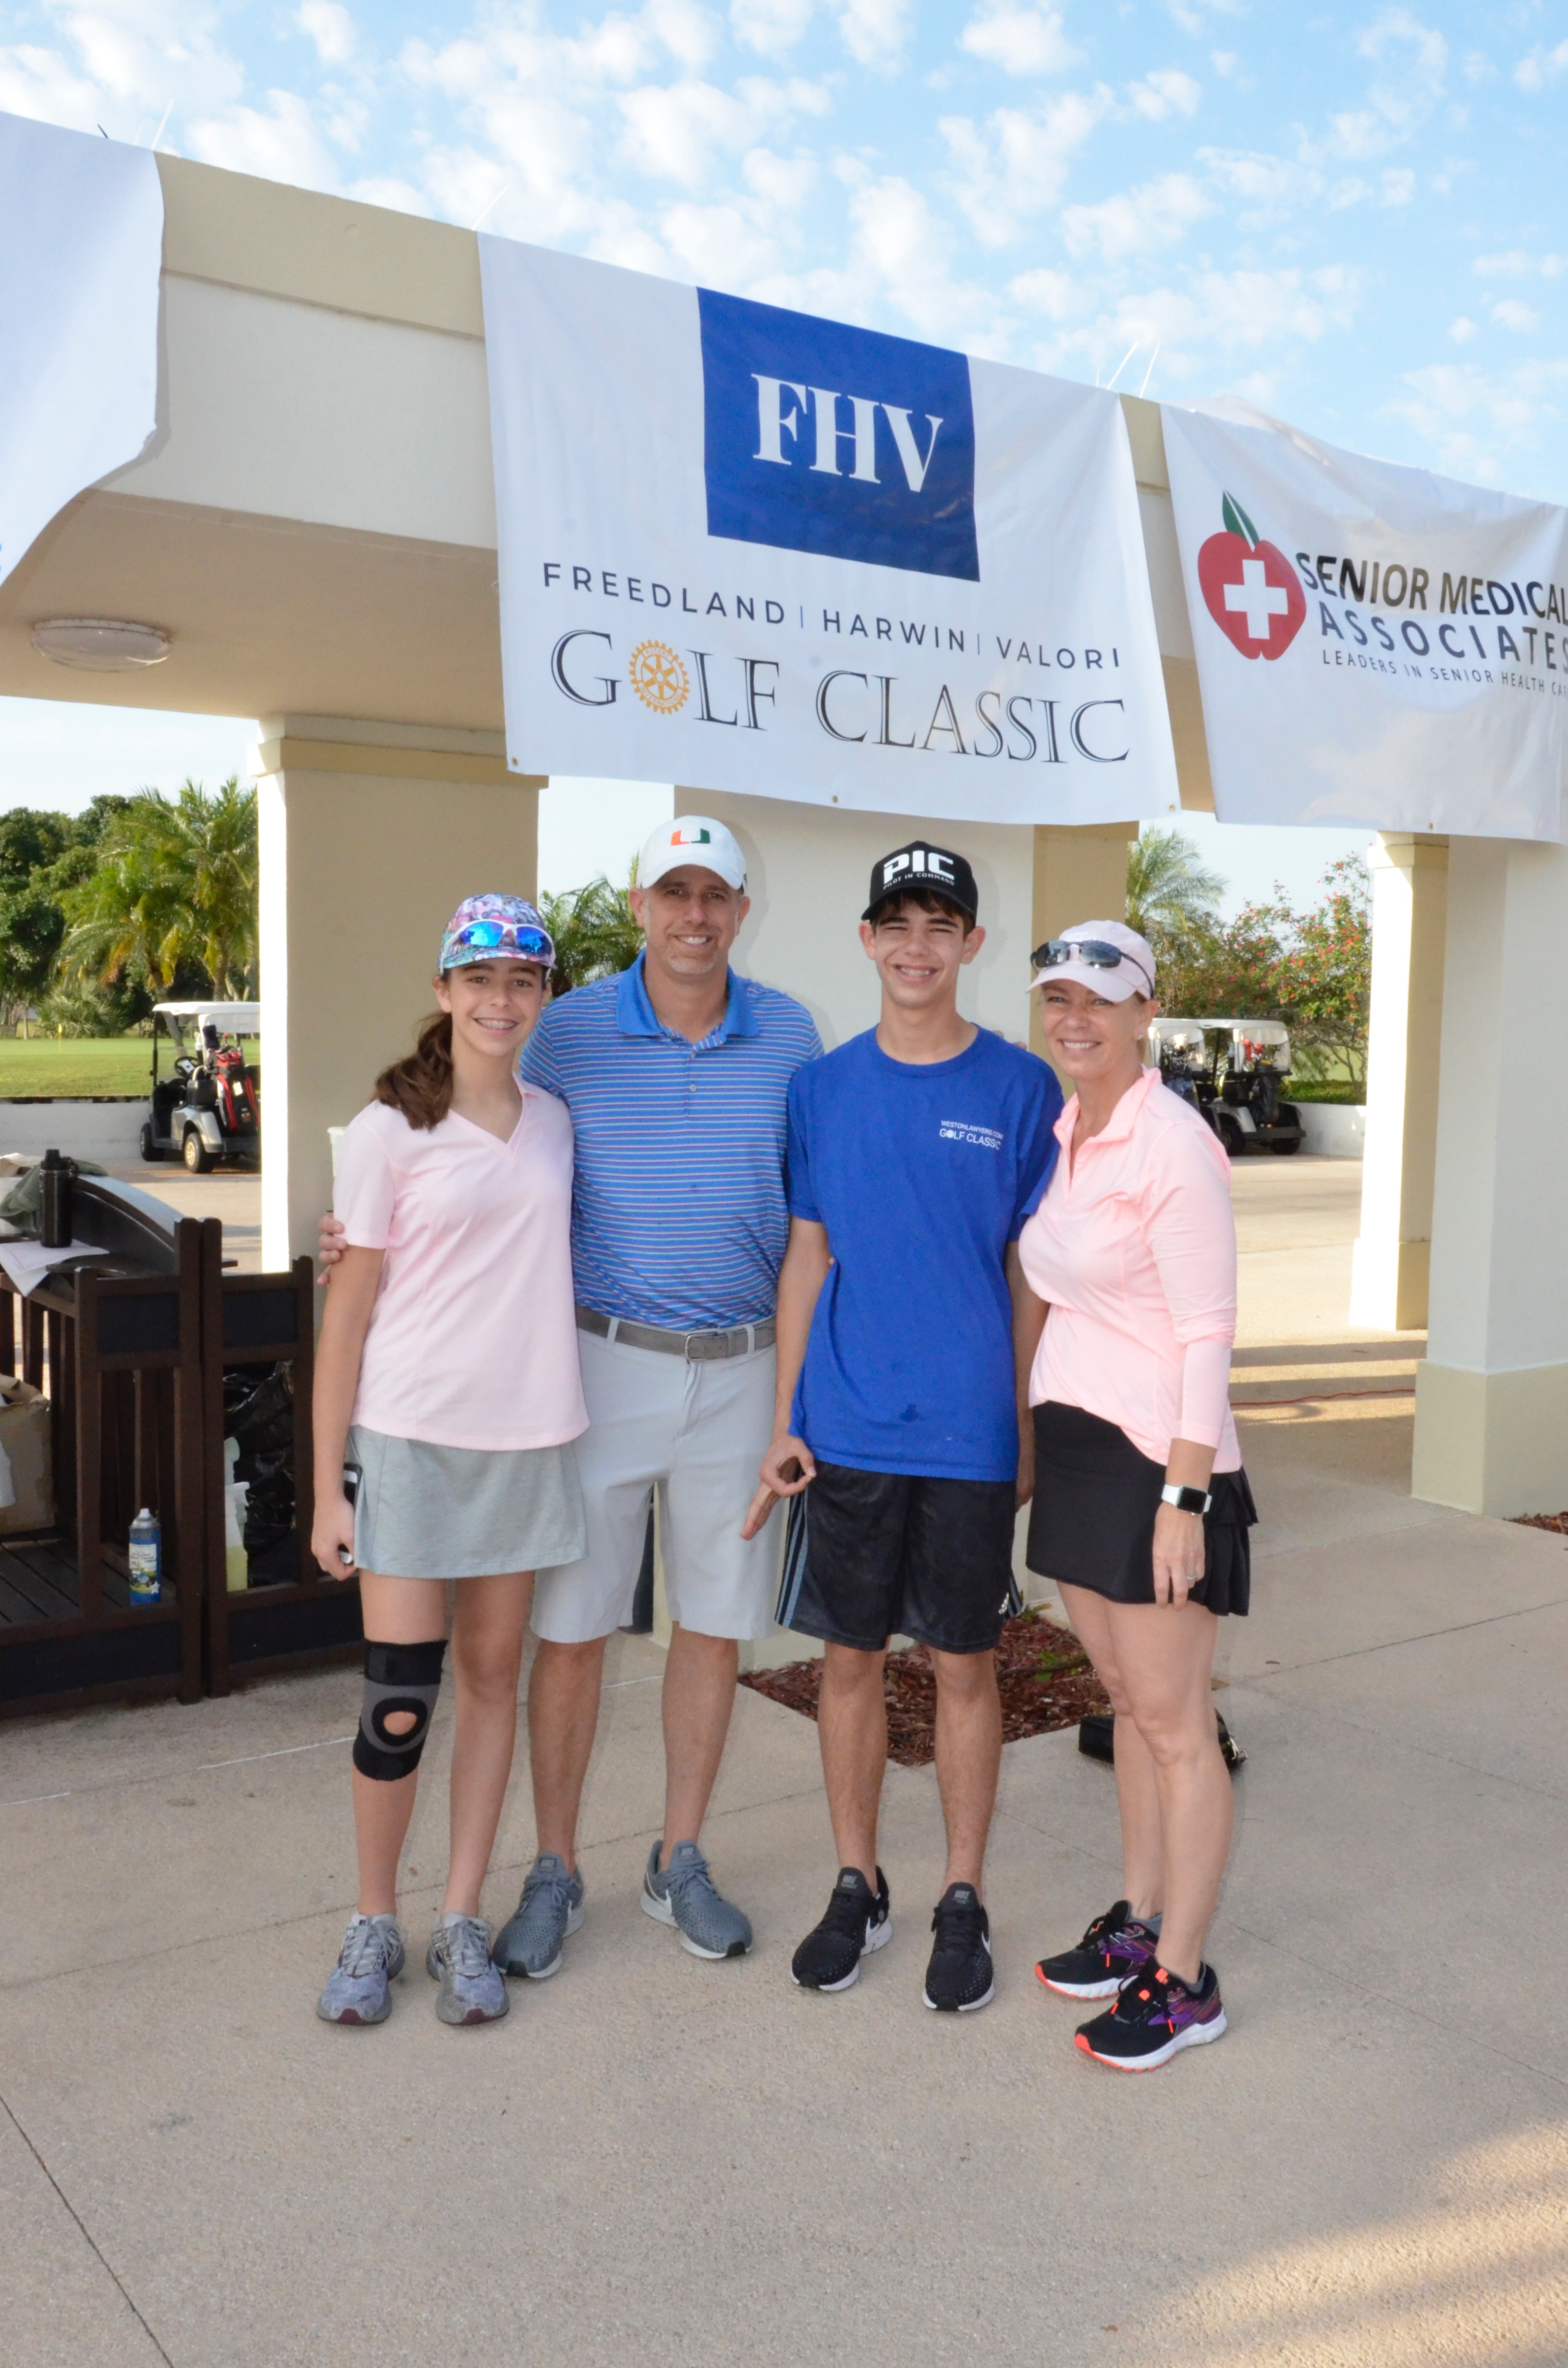 33rd Annual Rotary Golf Classic Sponsored by FHVLEGAL.COM gallery image #91